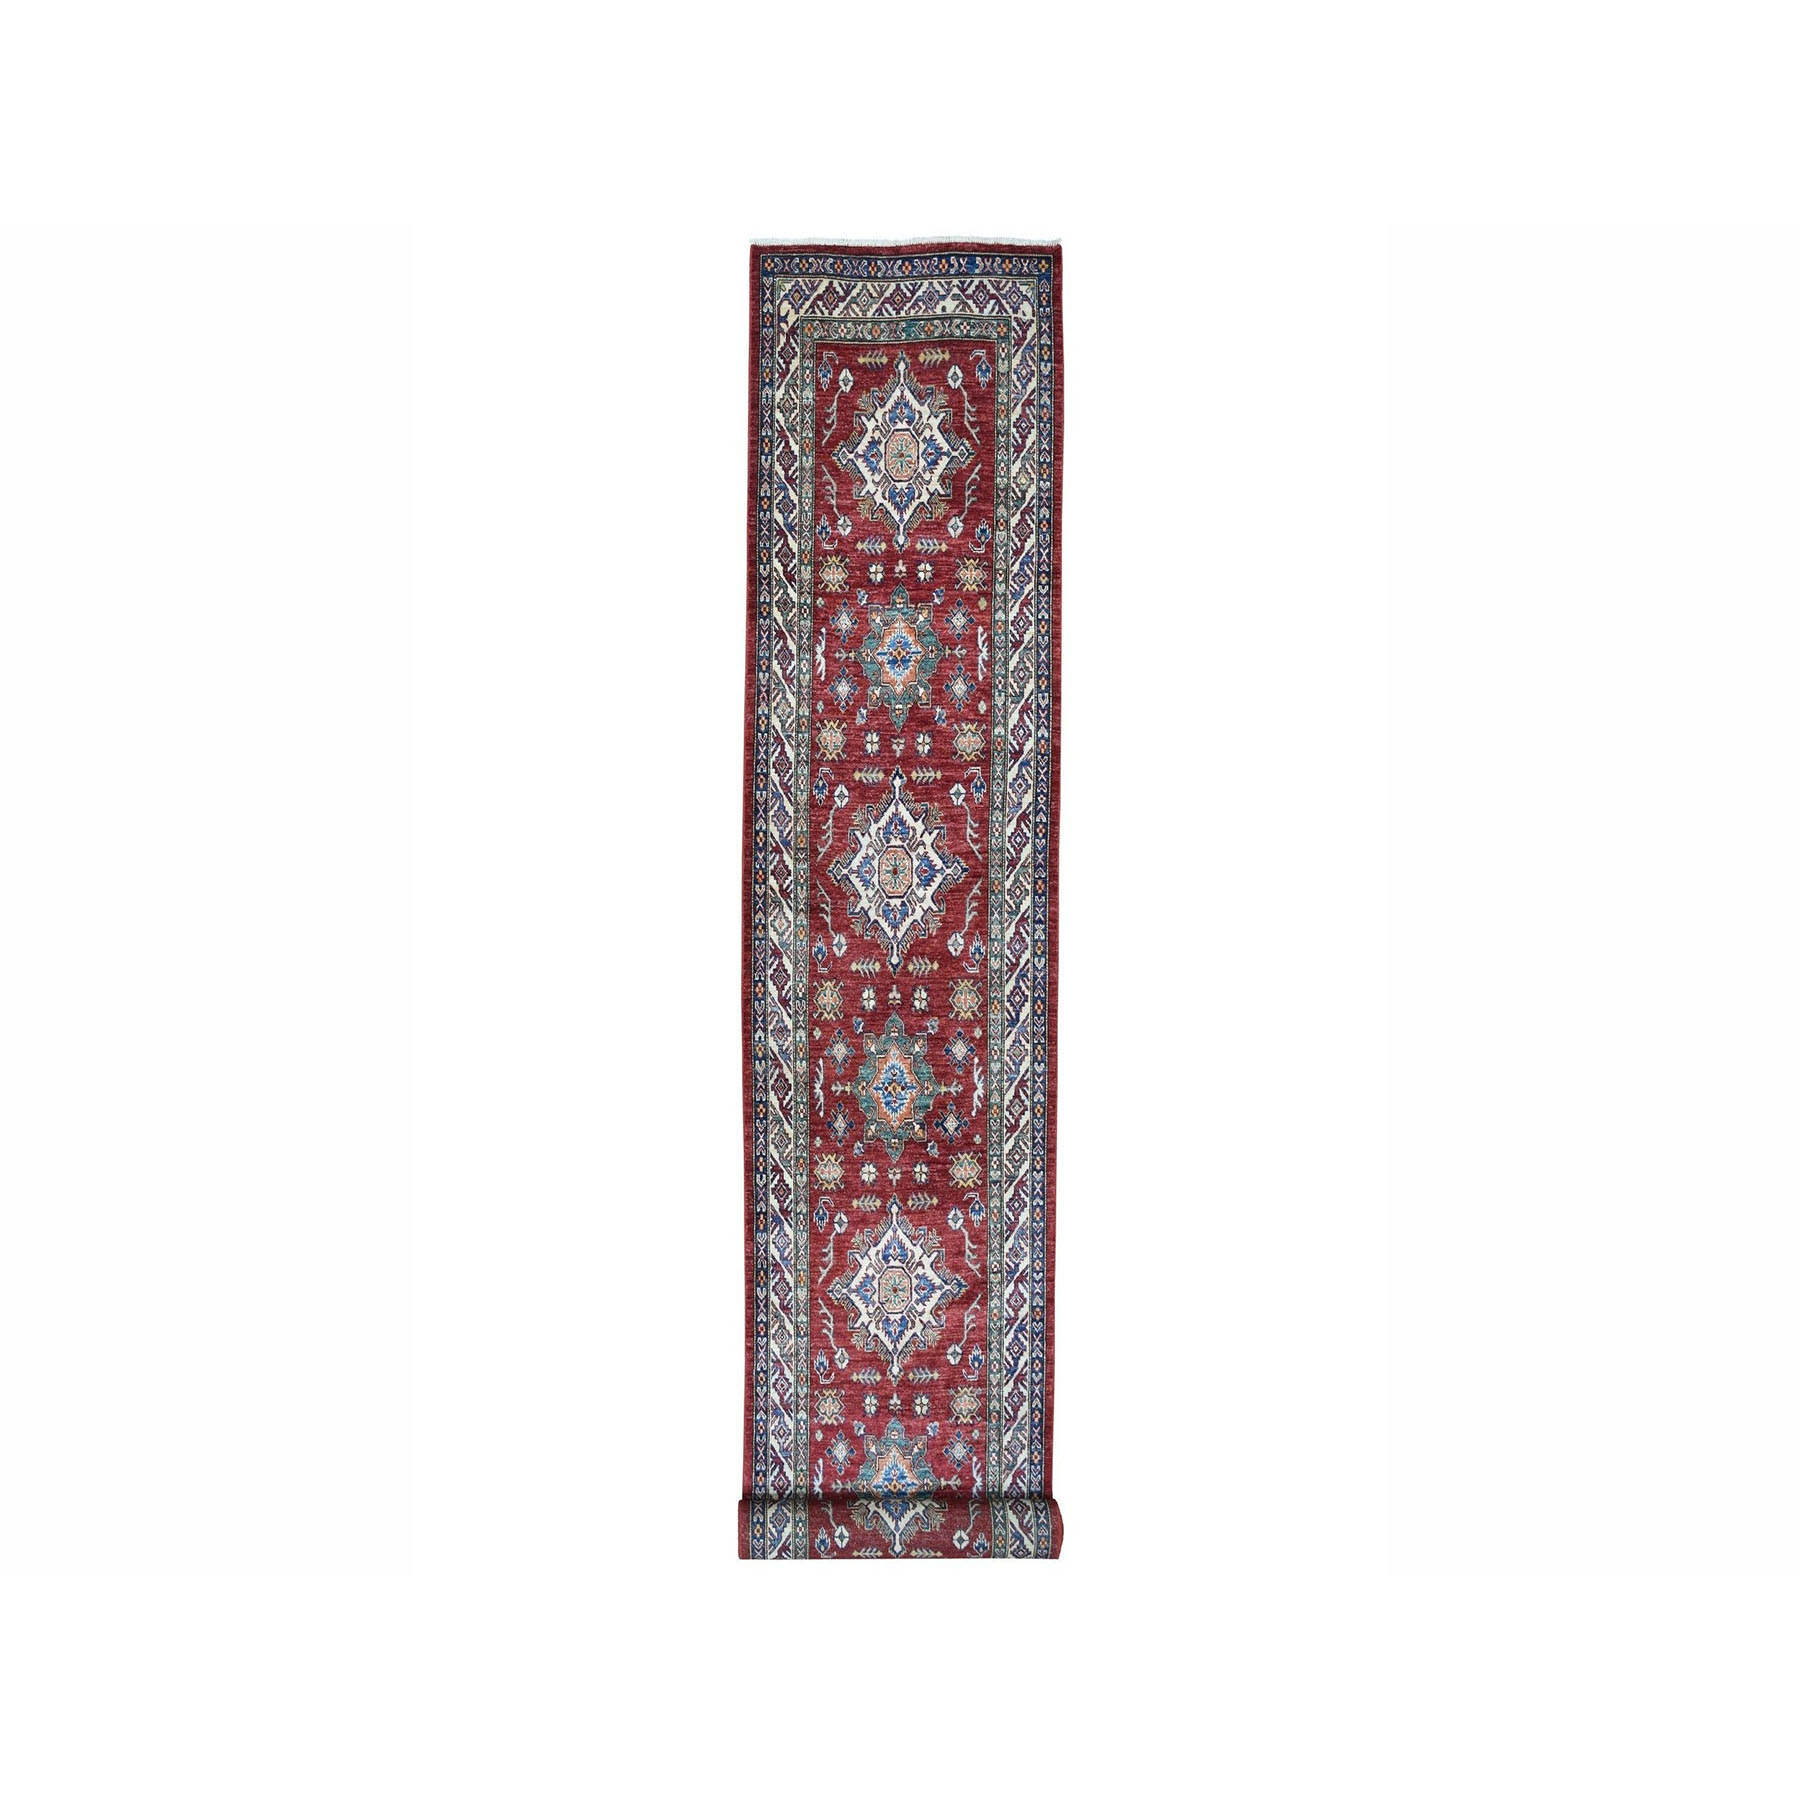 "3'3""x18'7"" Super Kazak Red Geometric Design Pure Wool Hand Woven XL Runner Oriental Rug"